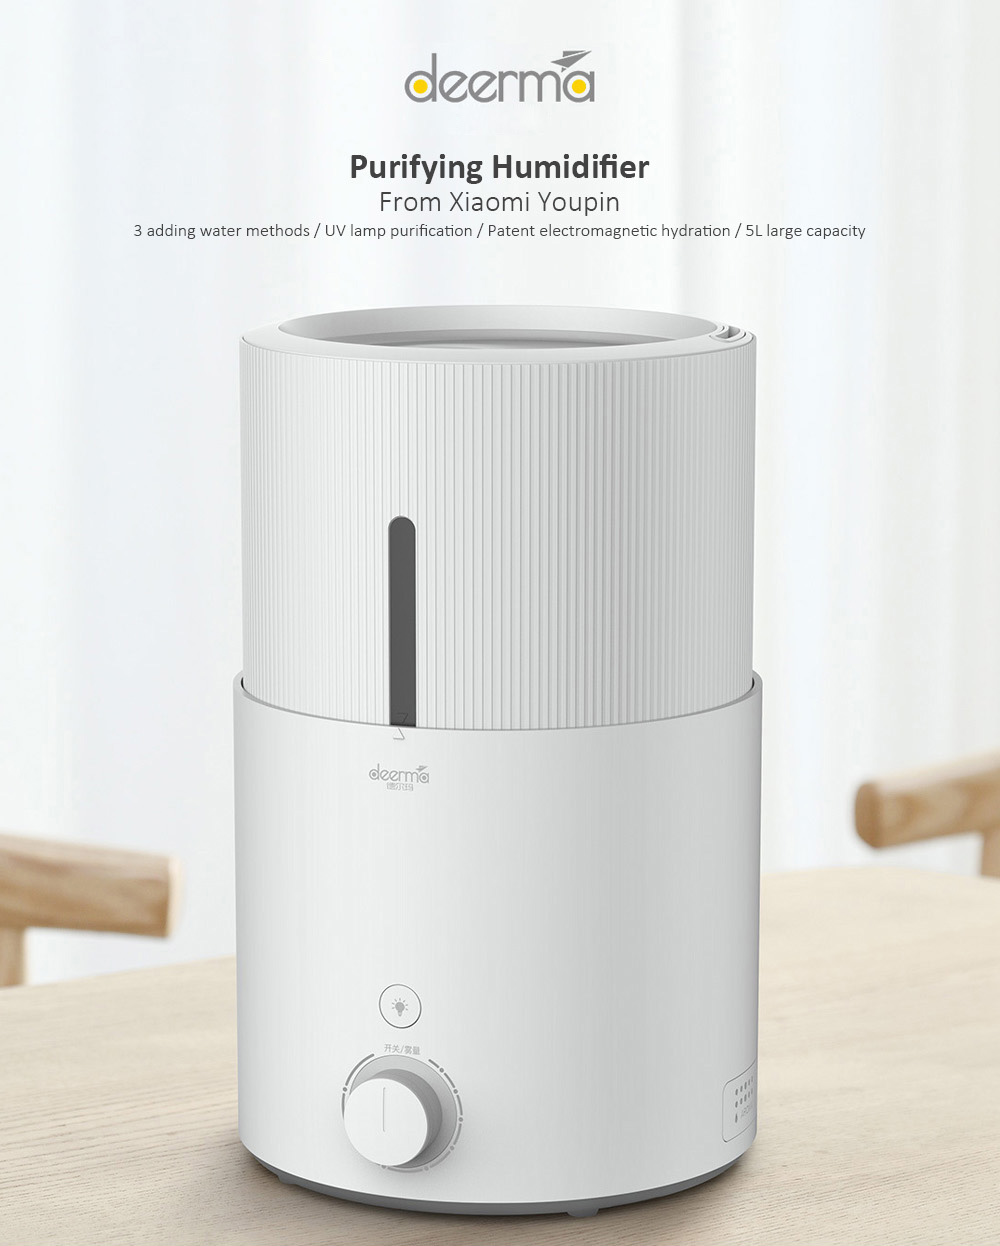 Xiaomi Deerma DEM - SJS600 5L Purifying Humidifier Offered For Just .40